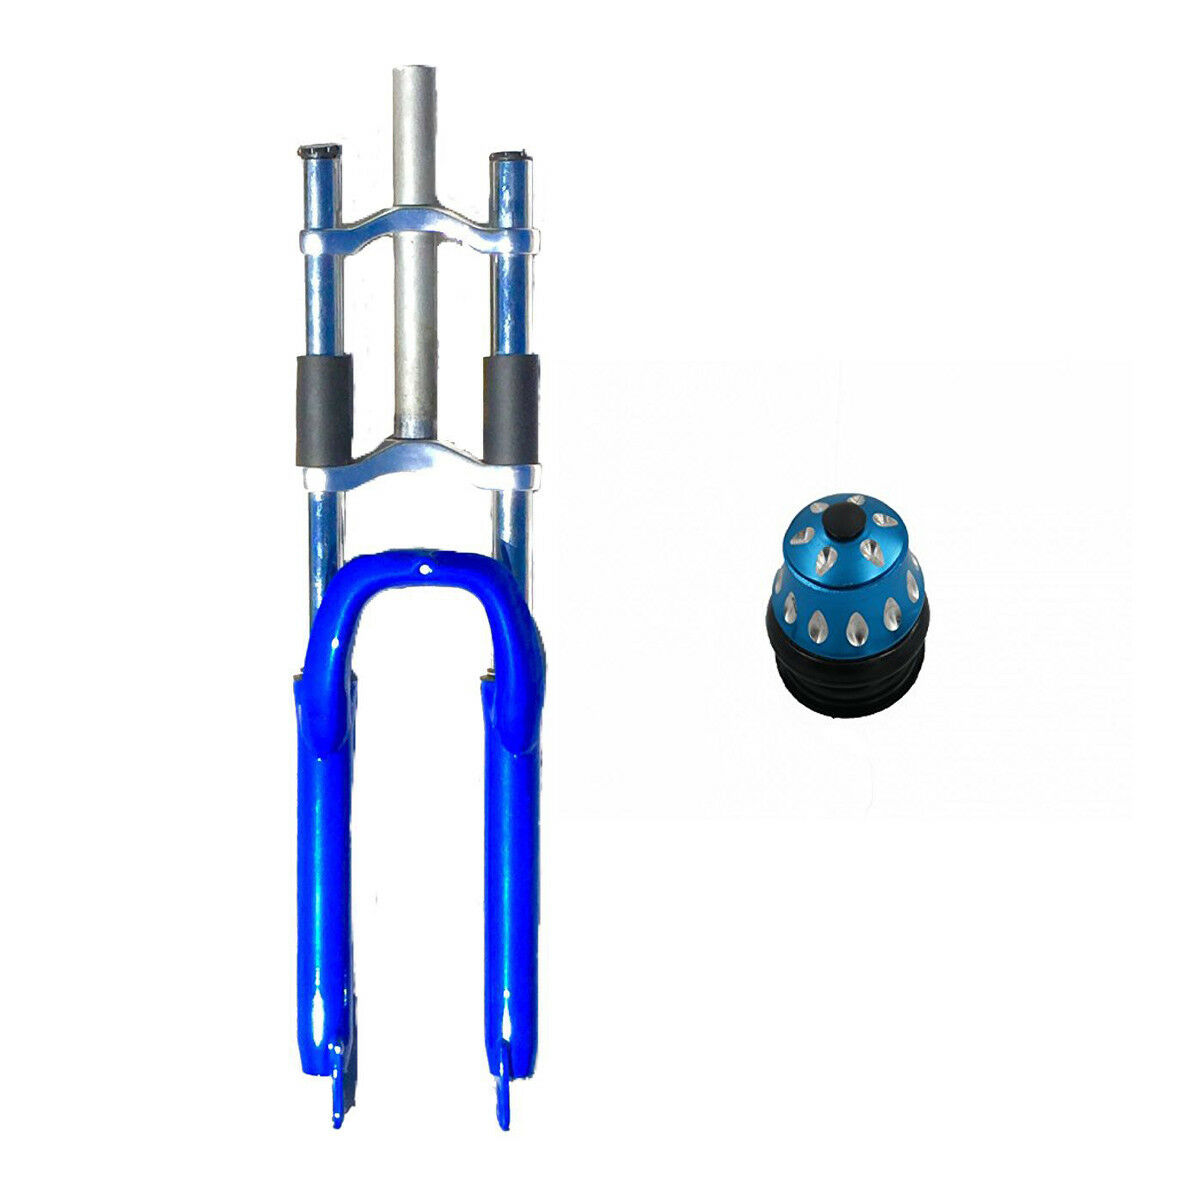 blueee color 26   triple tree suspension fork w double shoulder with headset Combo  all in high quality and low price